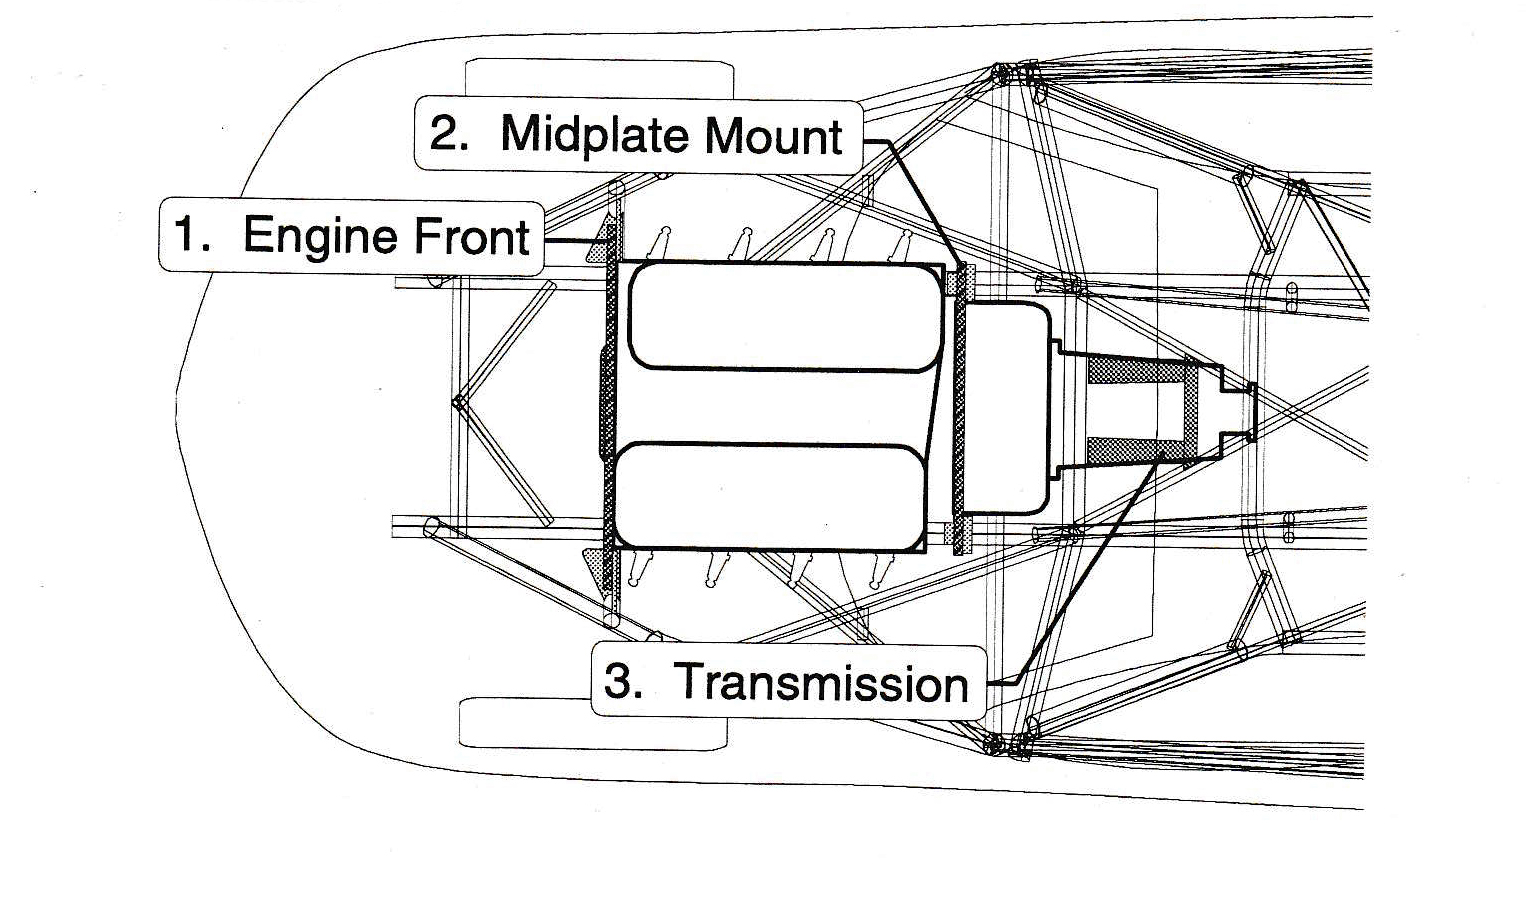 A Little Setback Engine Mounting Strategies For Drag Racing Basic Race Car Chassis Wiring Schematic According To Bickel This System Of Offers Three Important Advantages